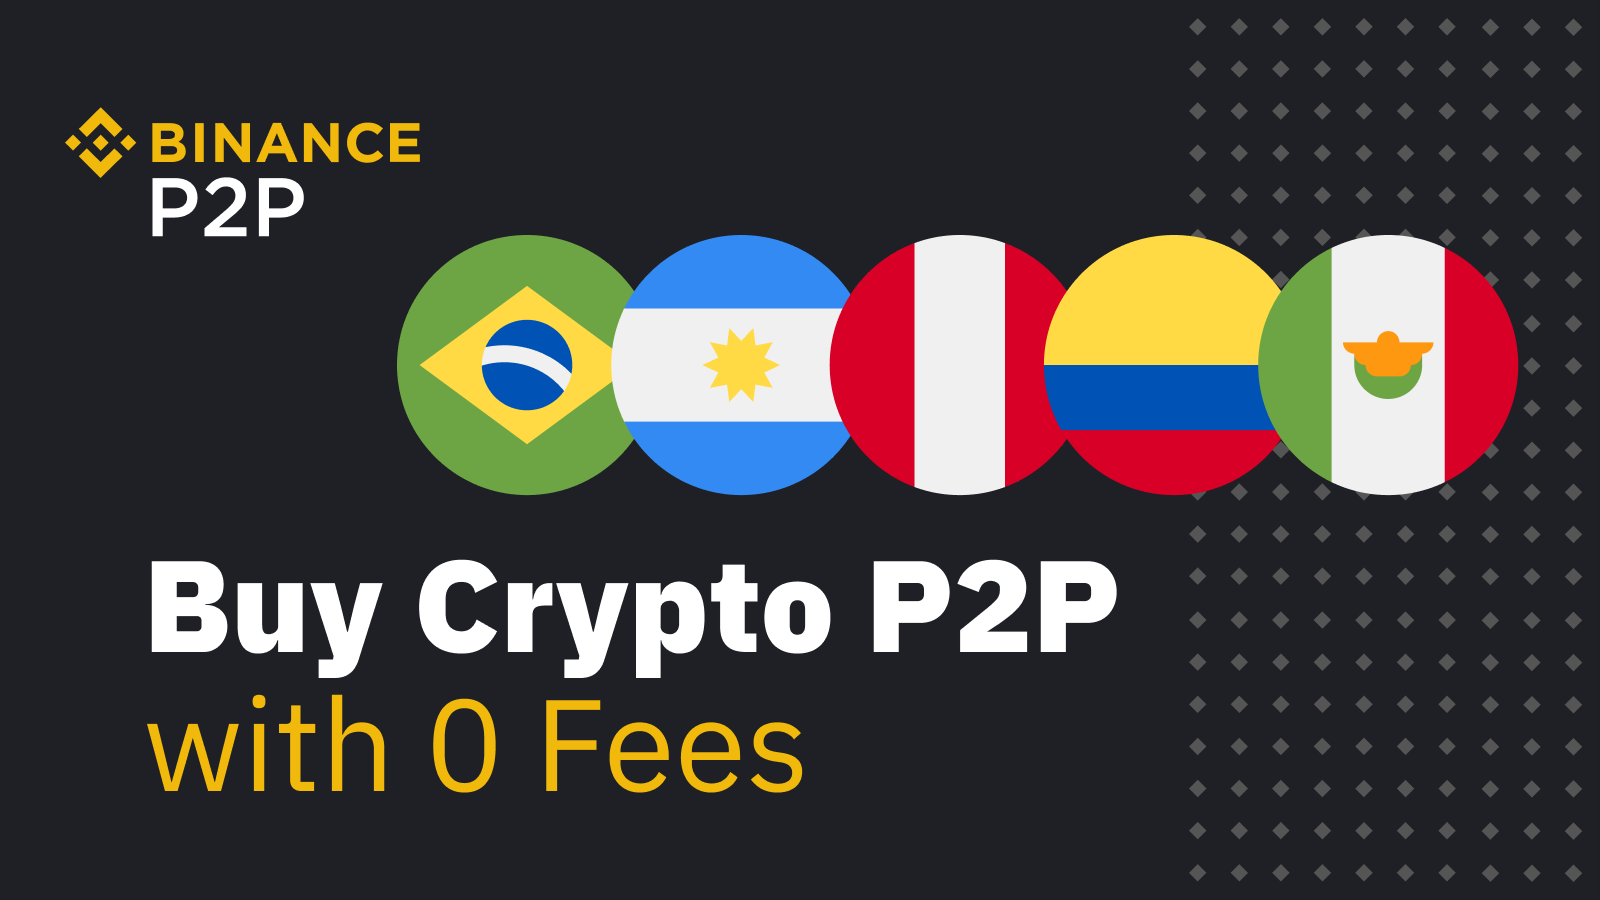 Binance Introduces Peer-to-Peer Trading to Latin America with Integration of 5 Fiat Currencies